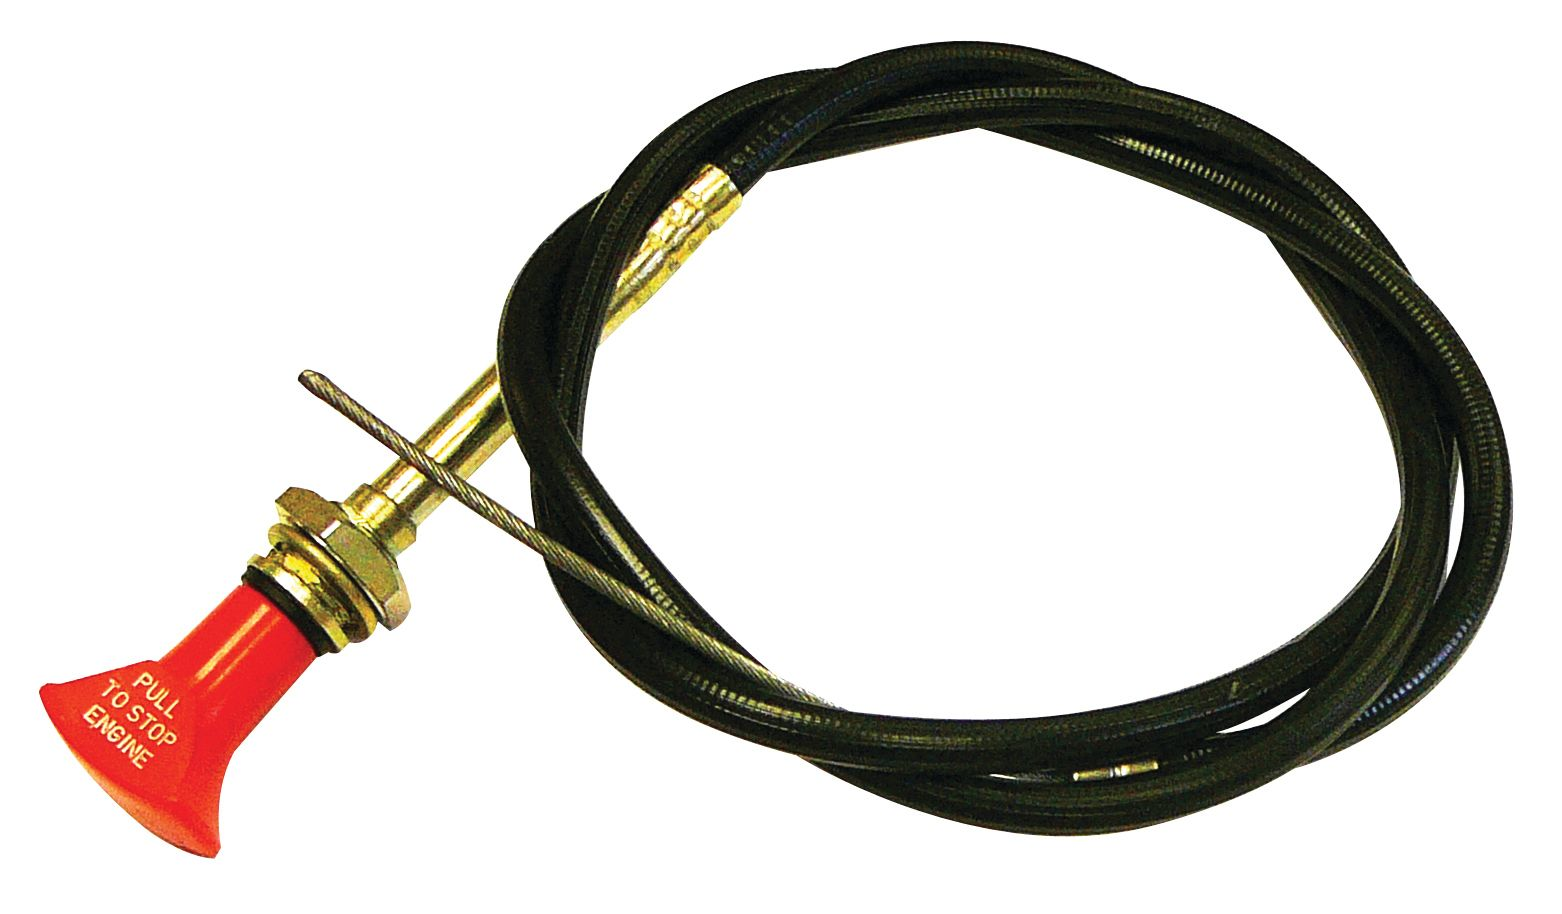 FARMTRAC CABLE-STOP 67463